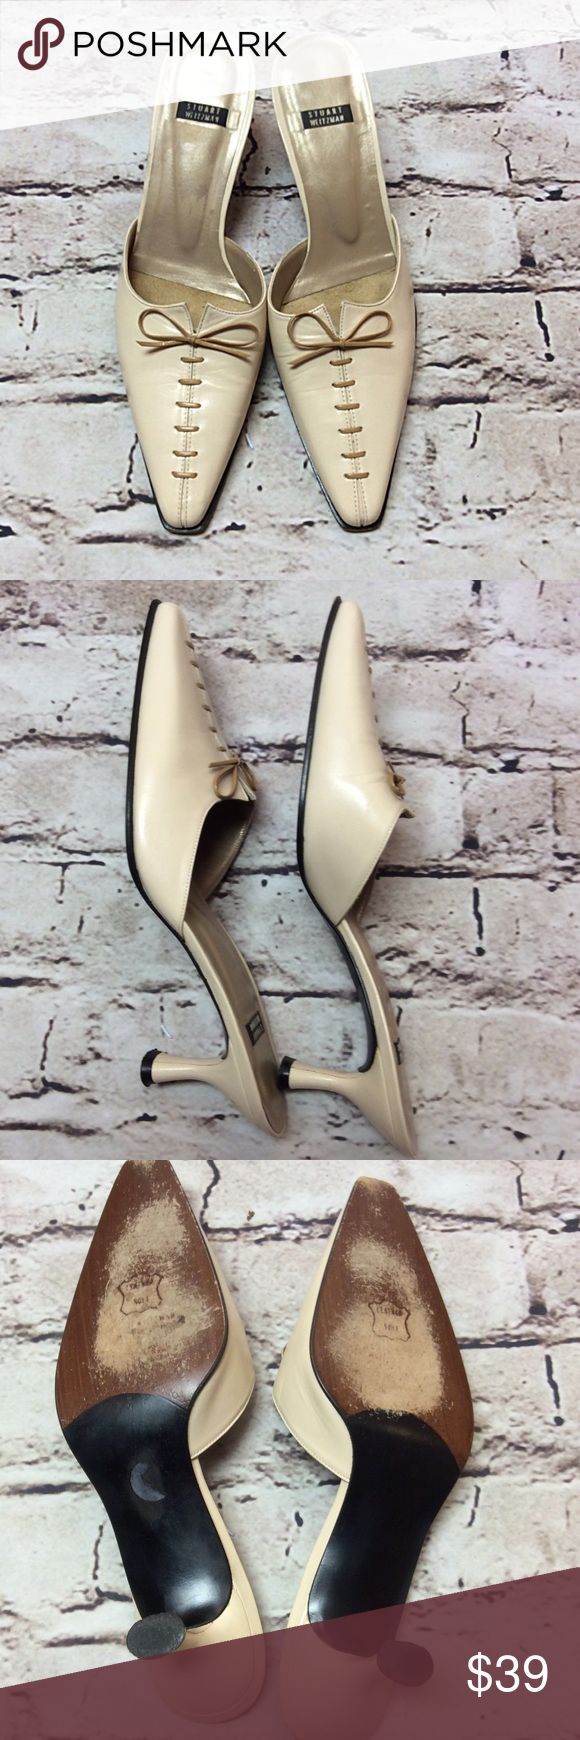 """STUART WEITZMAN BONE COLOR SLIDE IN HEELS/SHOES Classy slides with a closed toe and lacing on the top. All leather including sole with a couple of small marks on the heels and at the bottom of soles at the toes. Not noticeable when wearing. Zoom in on pics. 2.5"""" heel Stuart Weitzman Shoes Heels"""